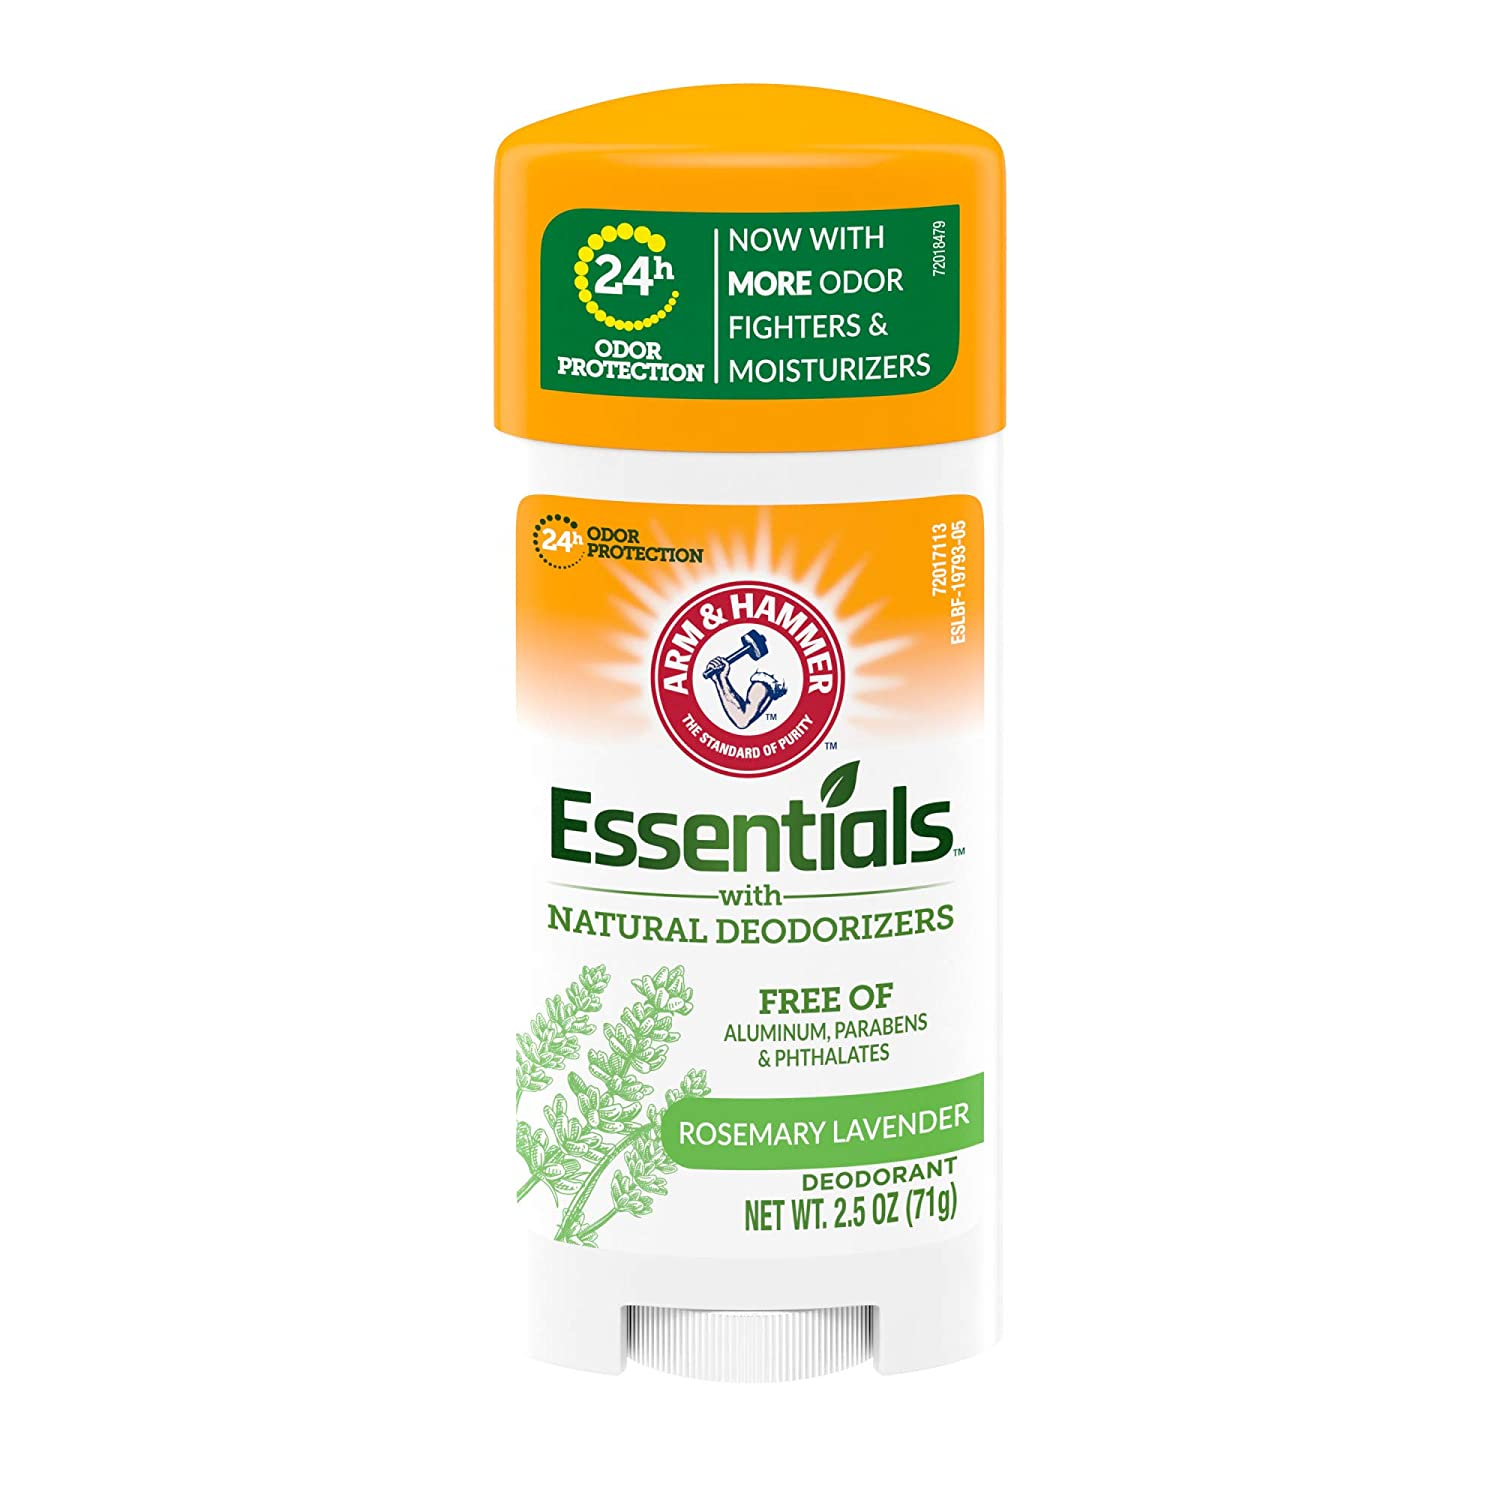 ARM & HAMMER Essentials Deodorant- Fresh Rosemary Lavender- Solid Oval- 2.5oz- Made with Natural Deodorizers- Free From Aluminum, Parabens & Phthalates : Beauty